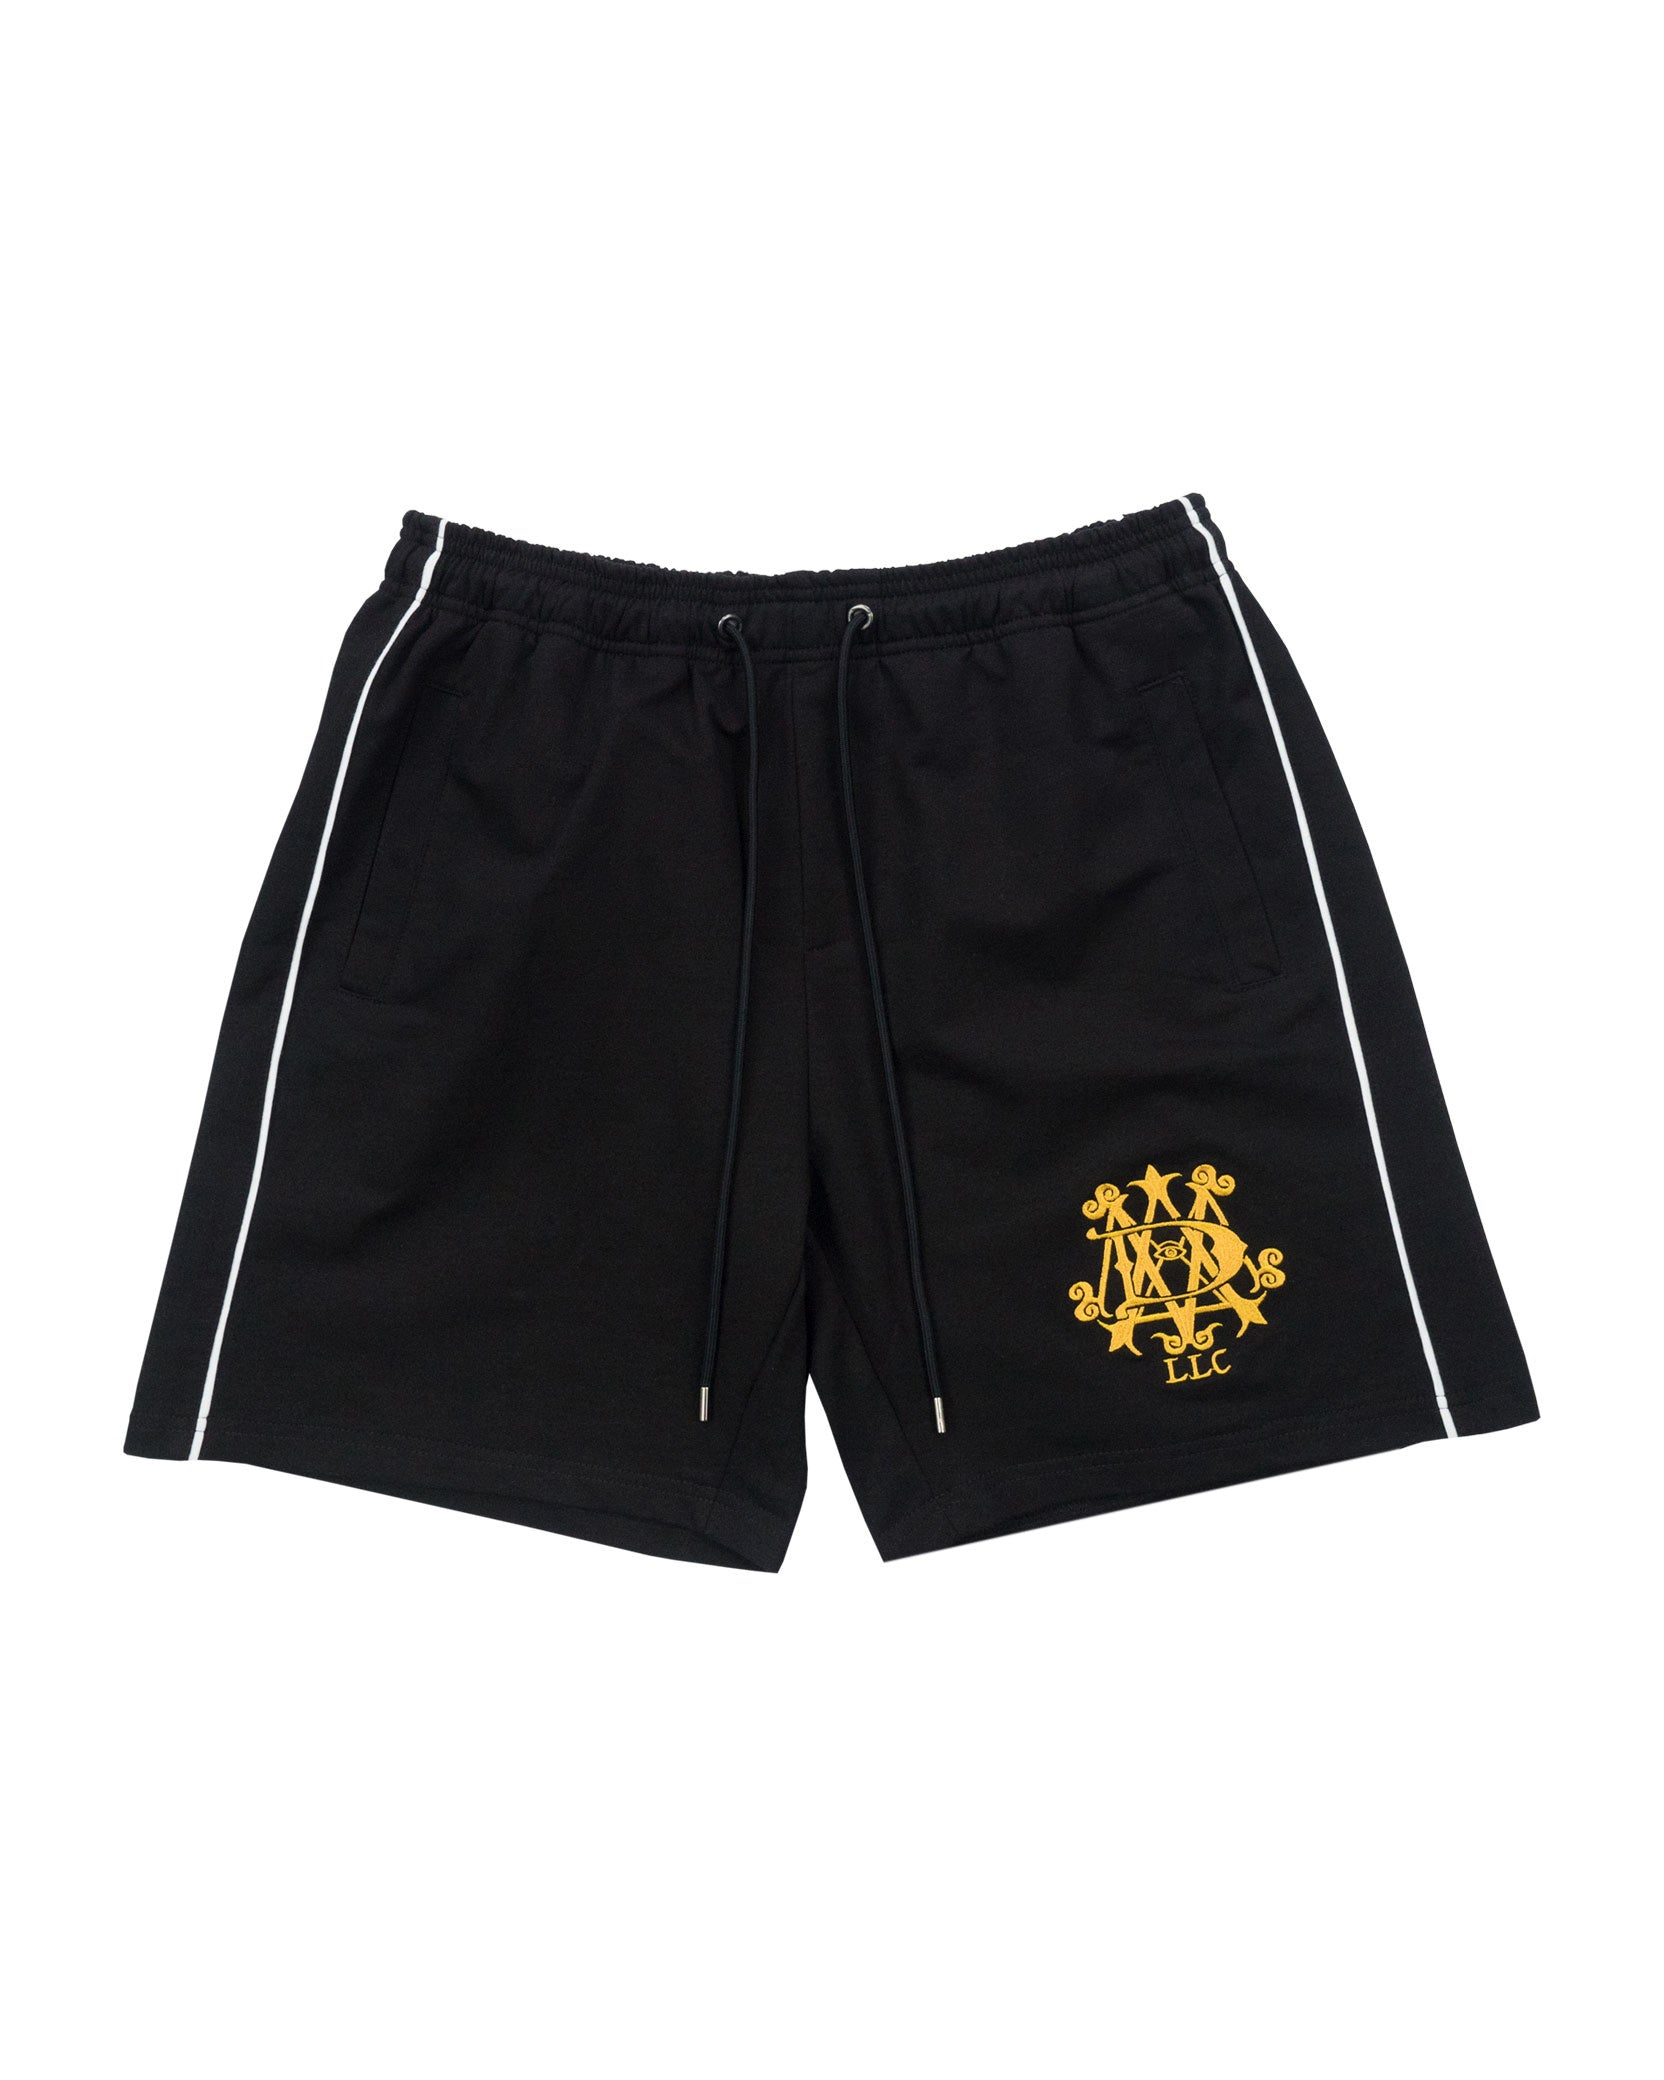 PIPING SHORTS - BLACK